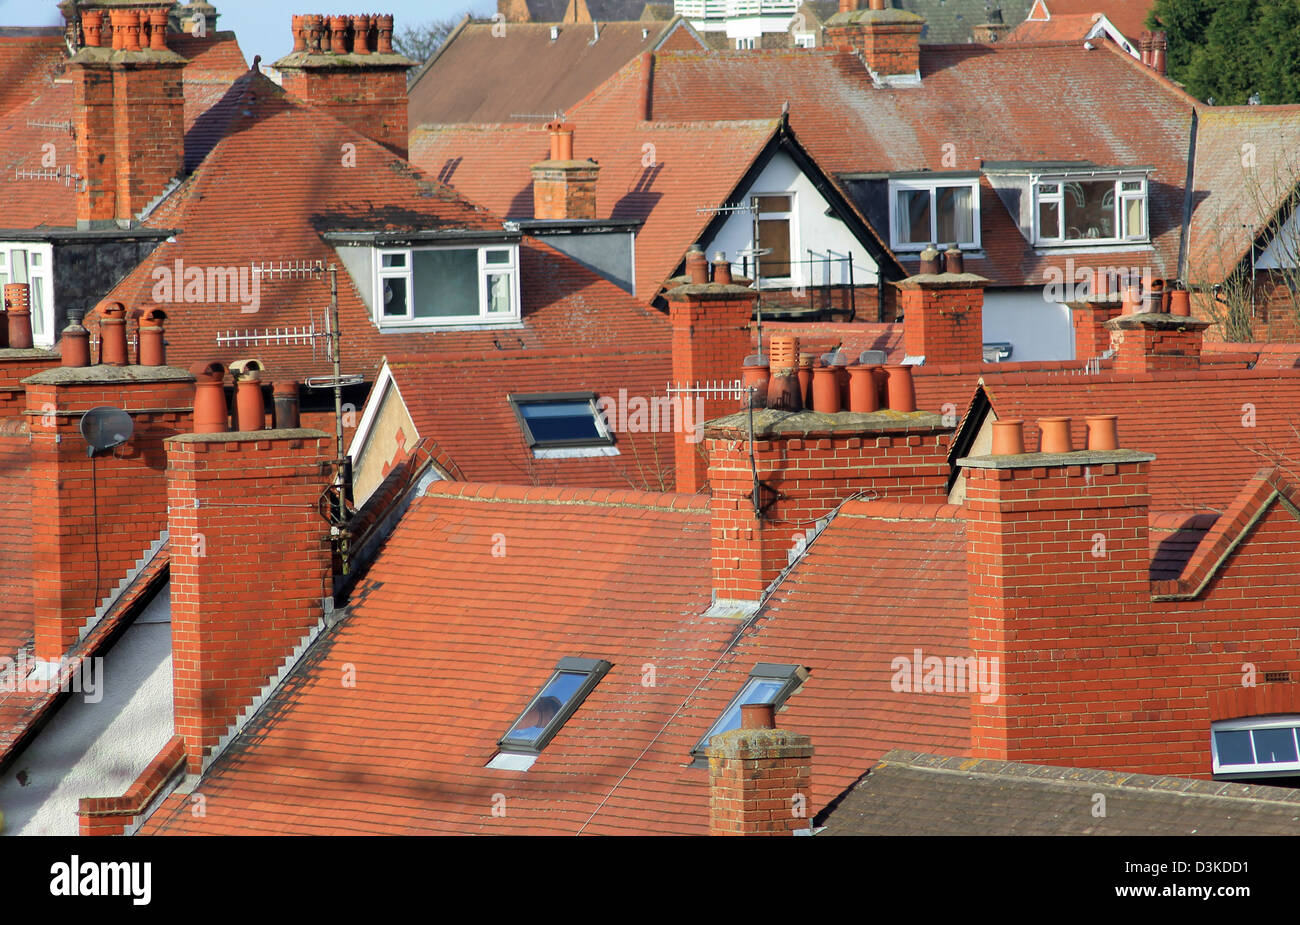 Red tiled roofs of modern houses in Scarborough, England. - Stock Image